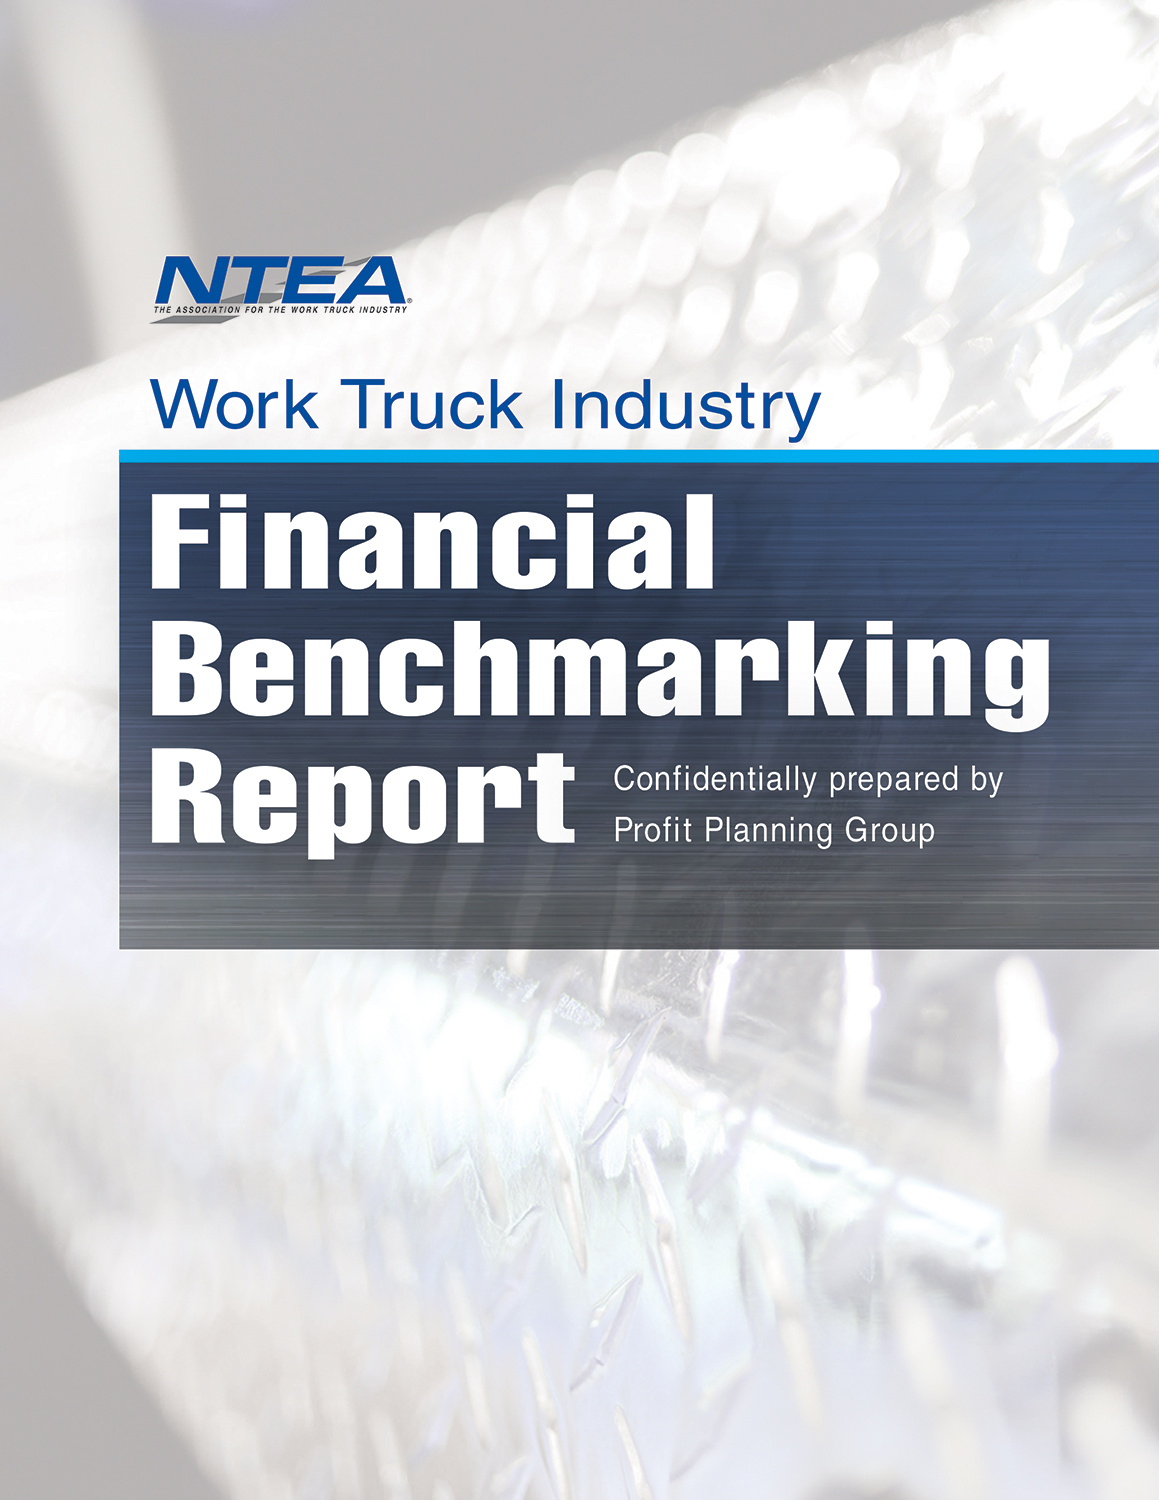 Premise Indicator Words: Work Truck Industry Financial Benchmarking